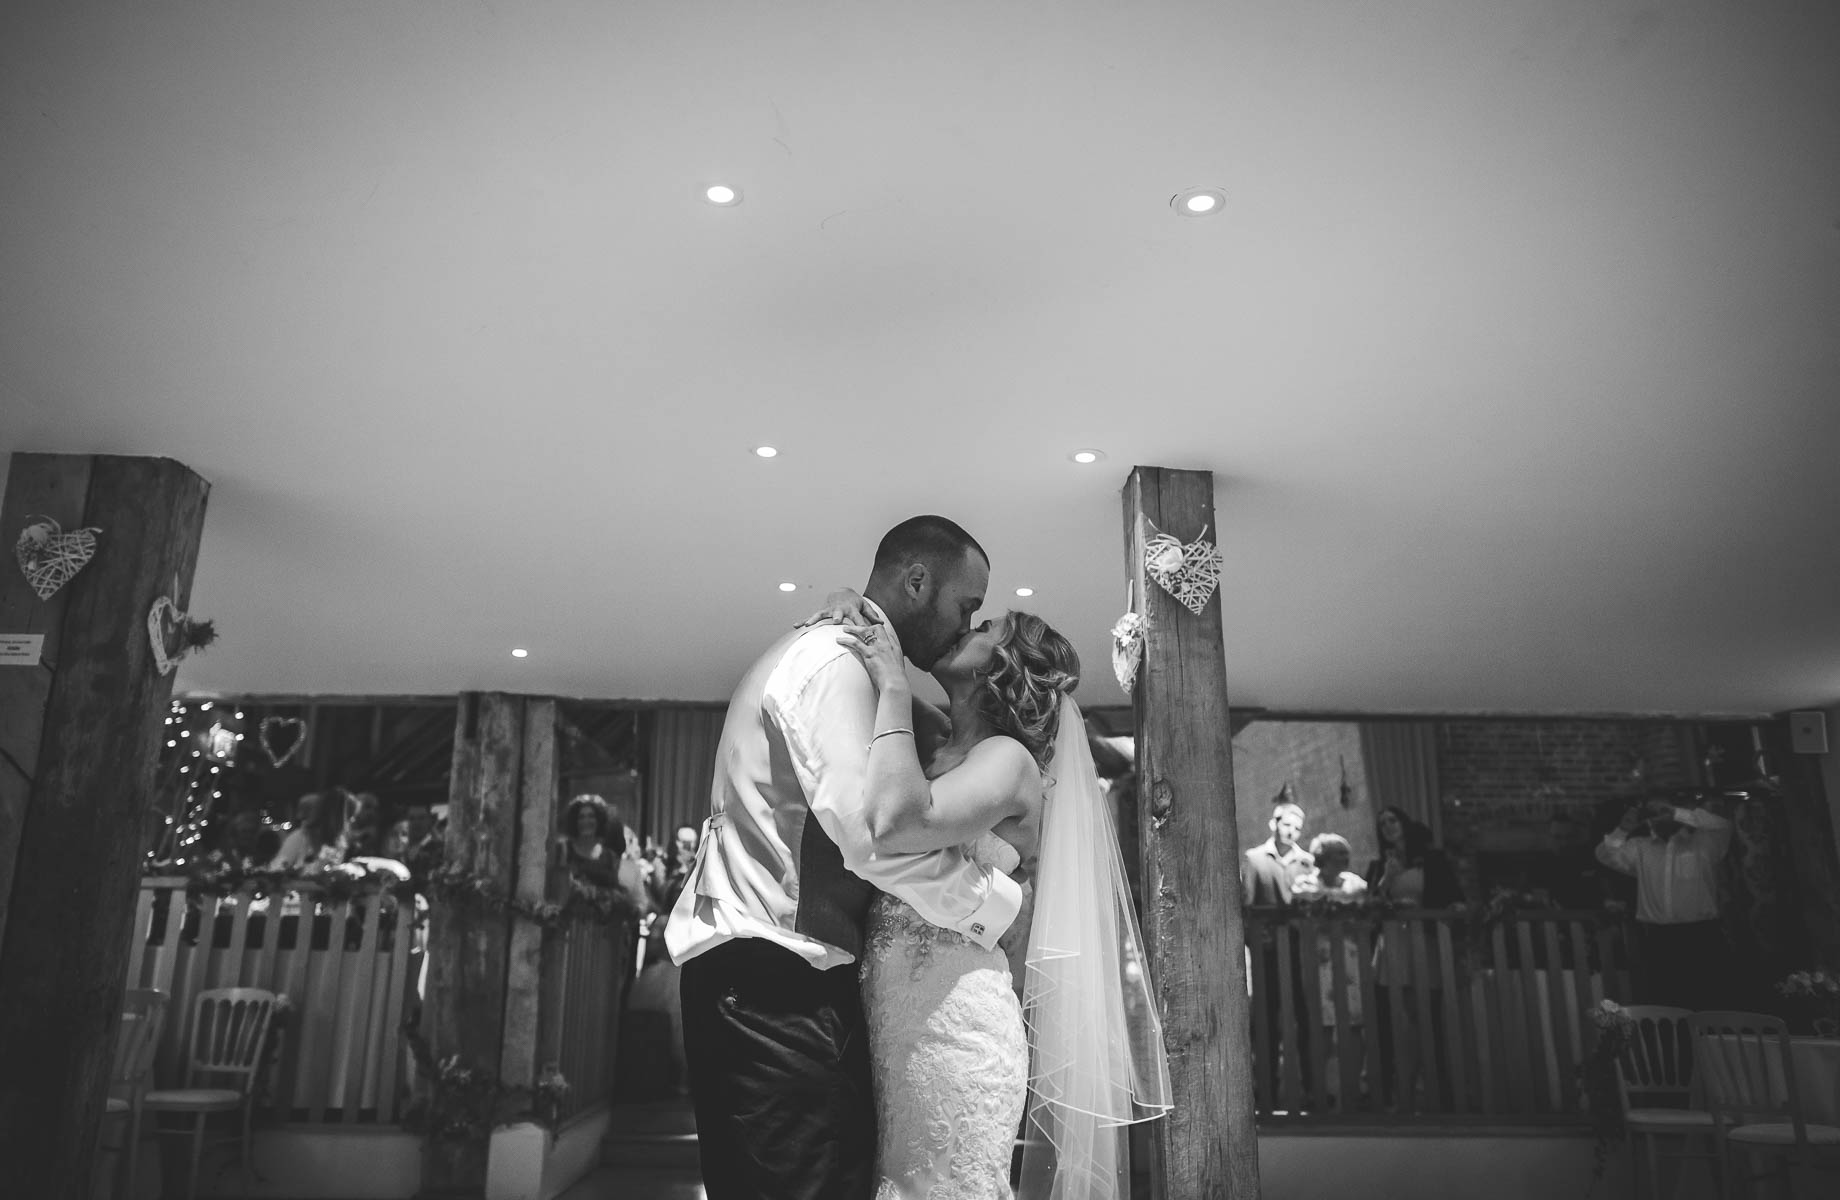 Bury Court Barn wedding photography - Guy Collier - Kate and Russ (183 of 187)